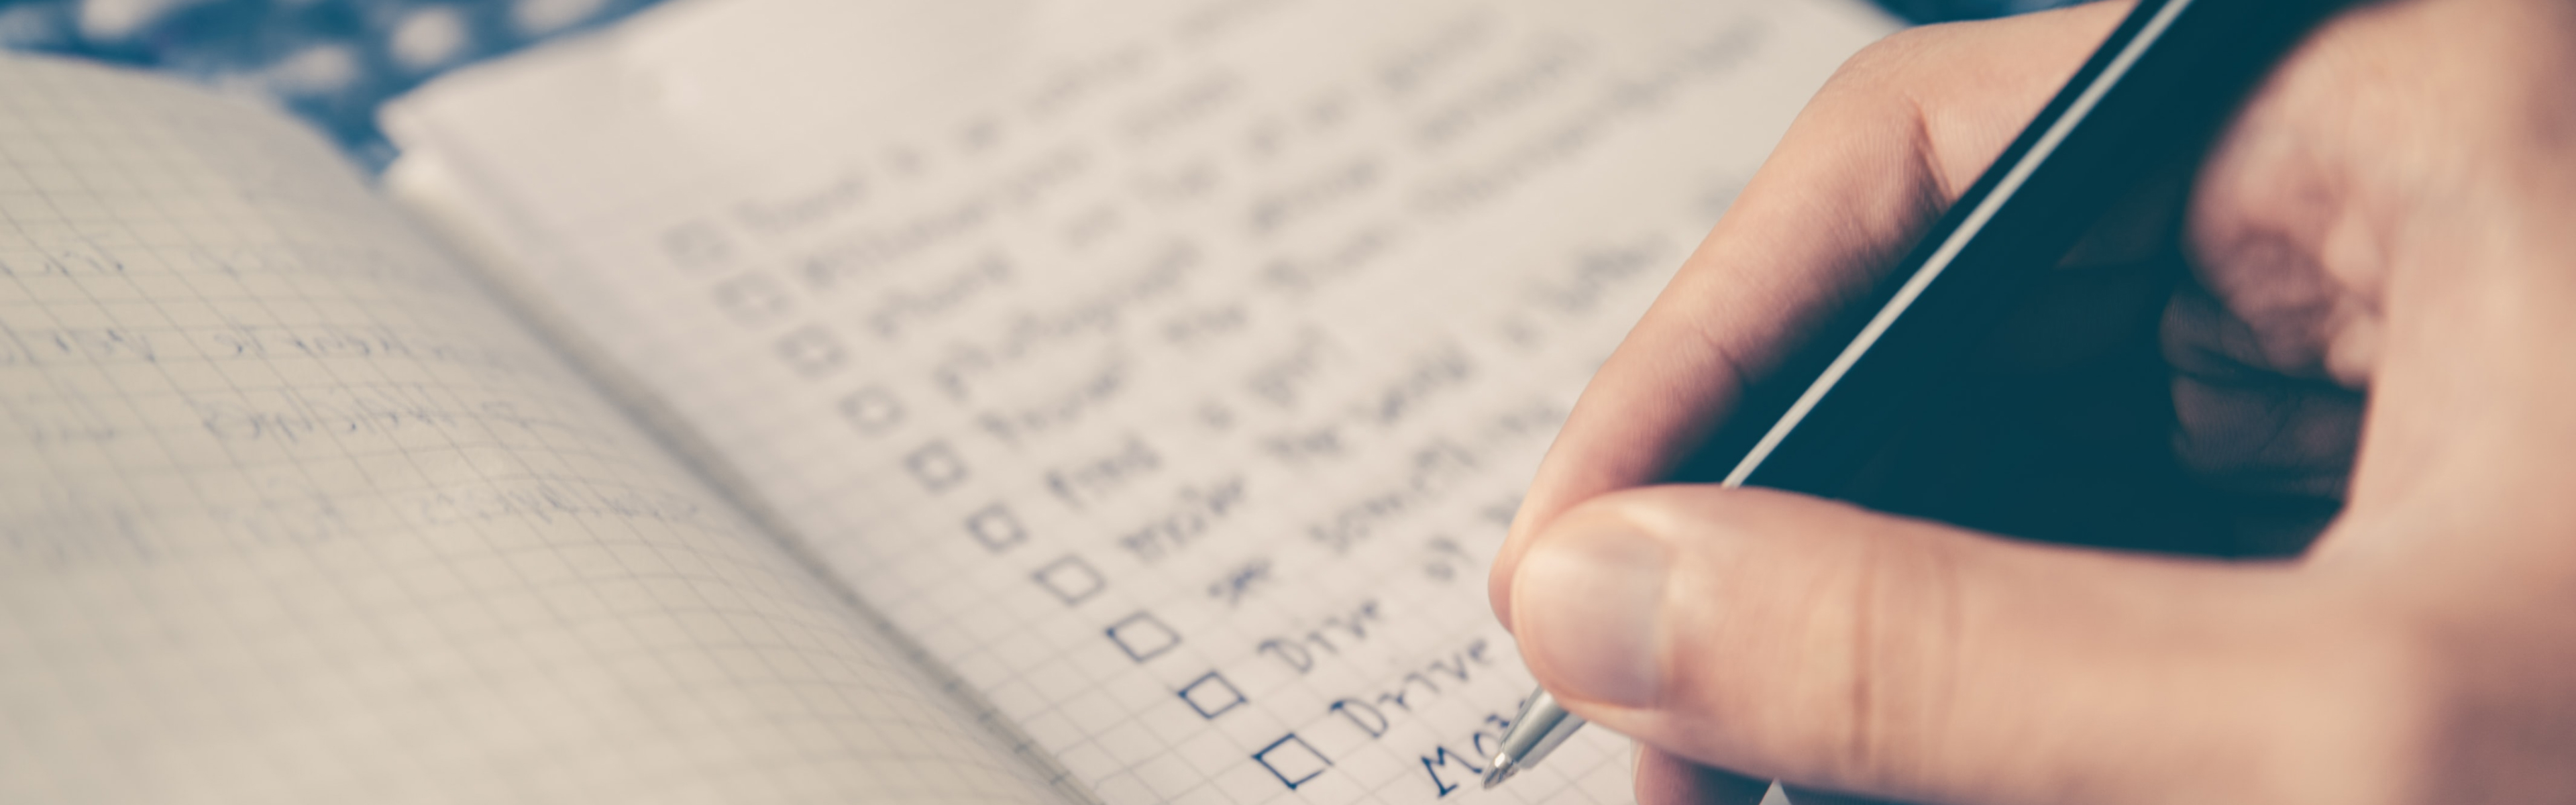 What to Ask Before You Sign Your Next Freelance Project Braintrust Blog banner.